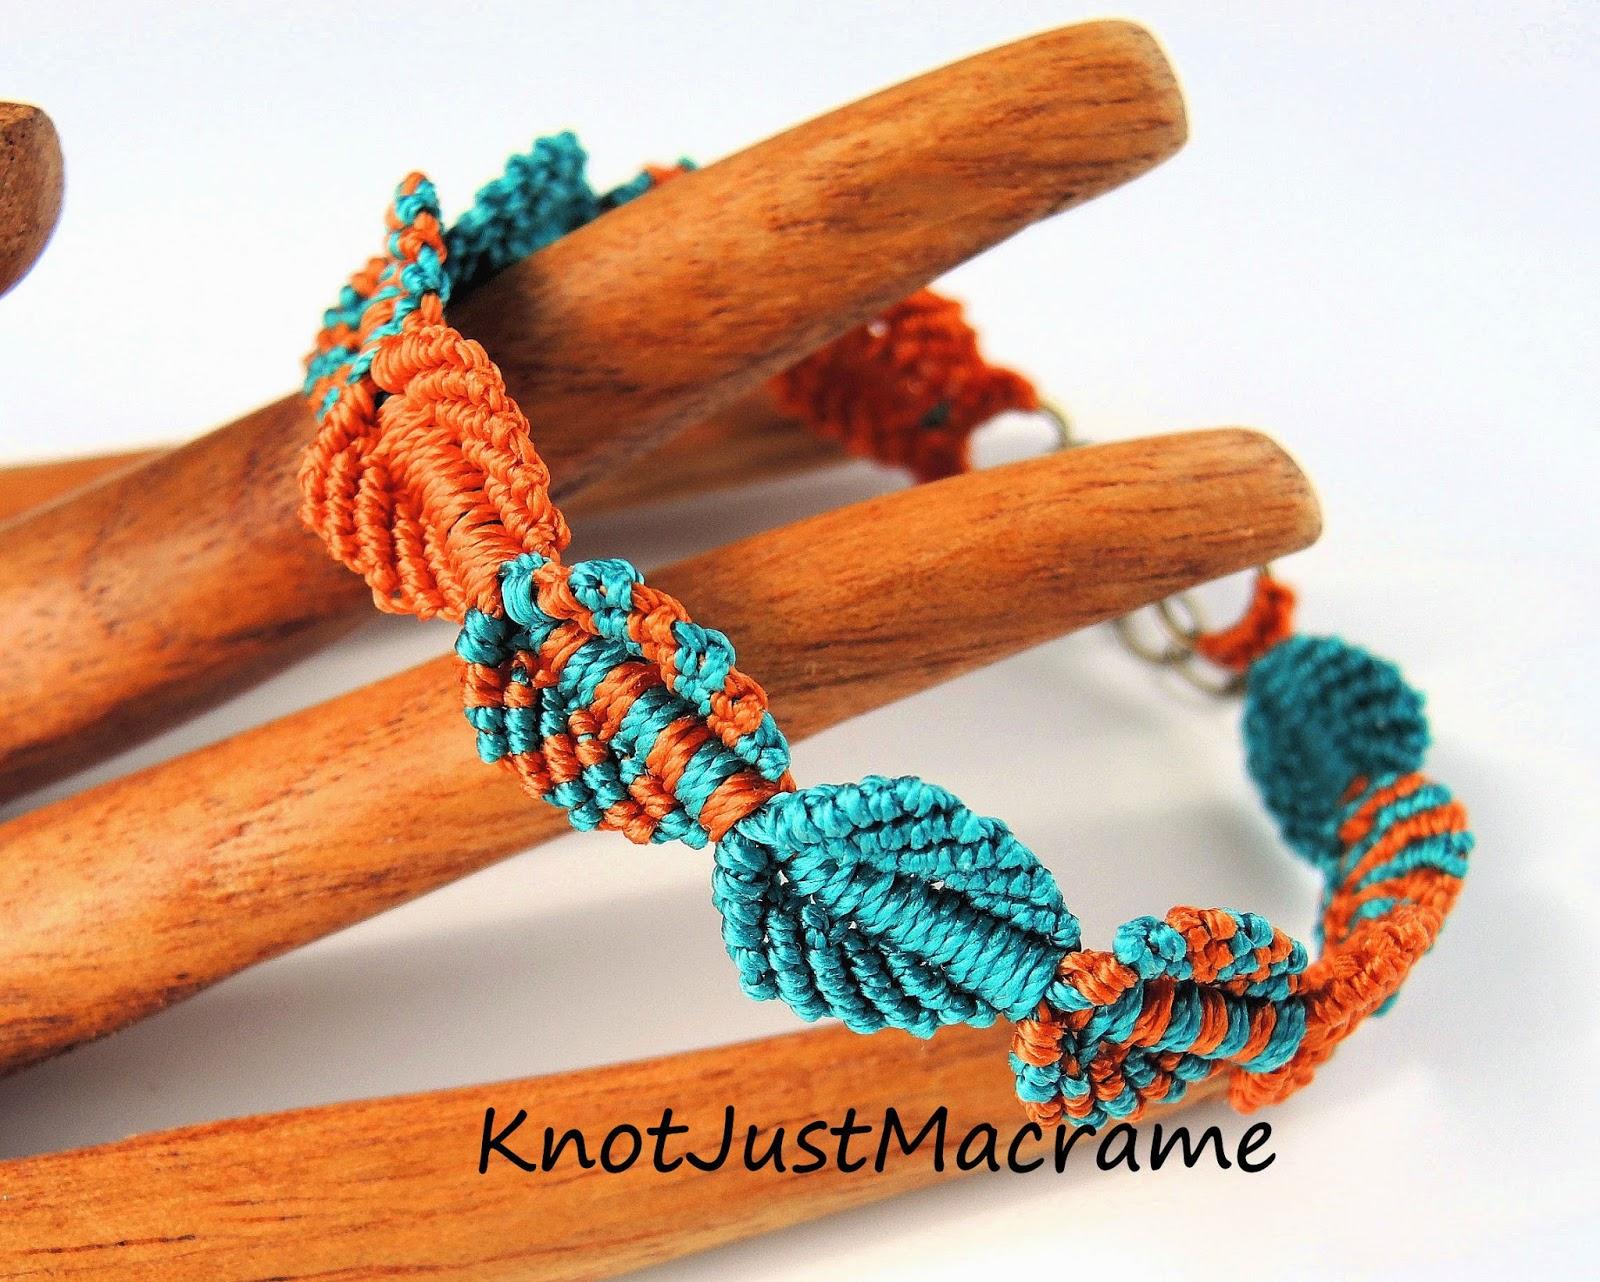 Falling Leaves Micro Macrame Bracelet by Sherri Stokey of Knot Just Macrame.